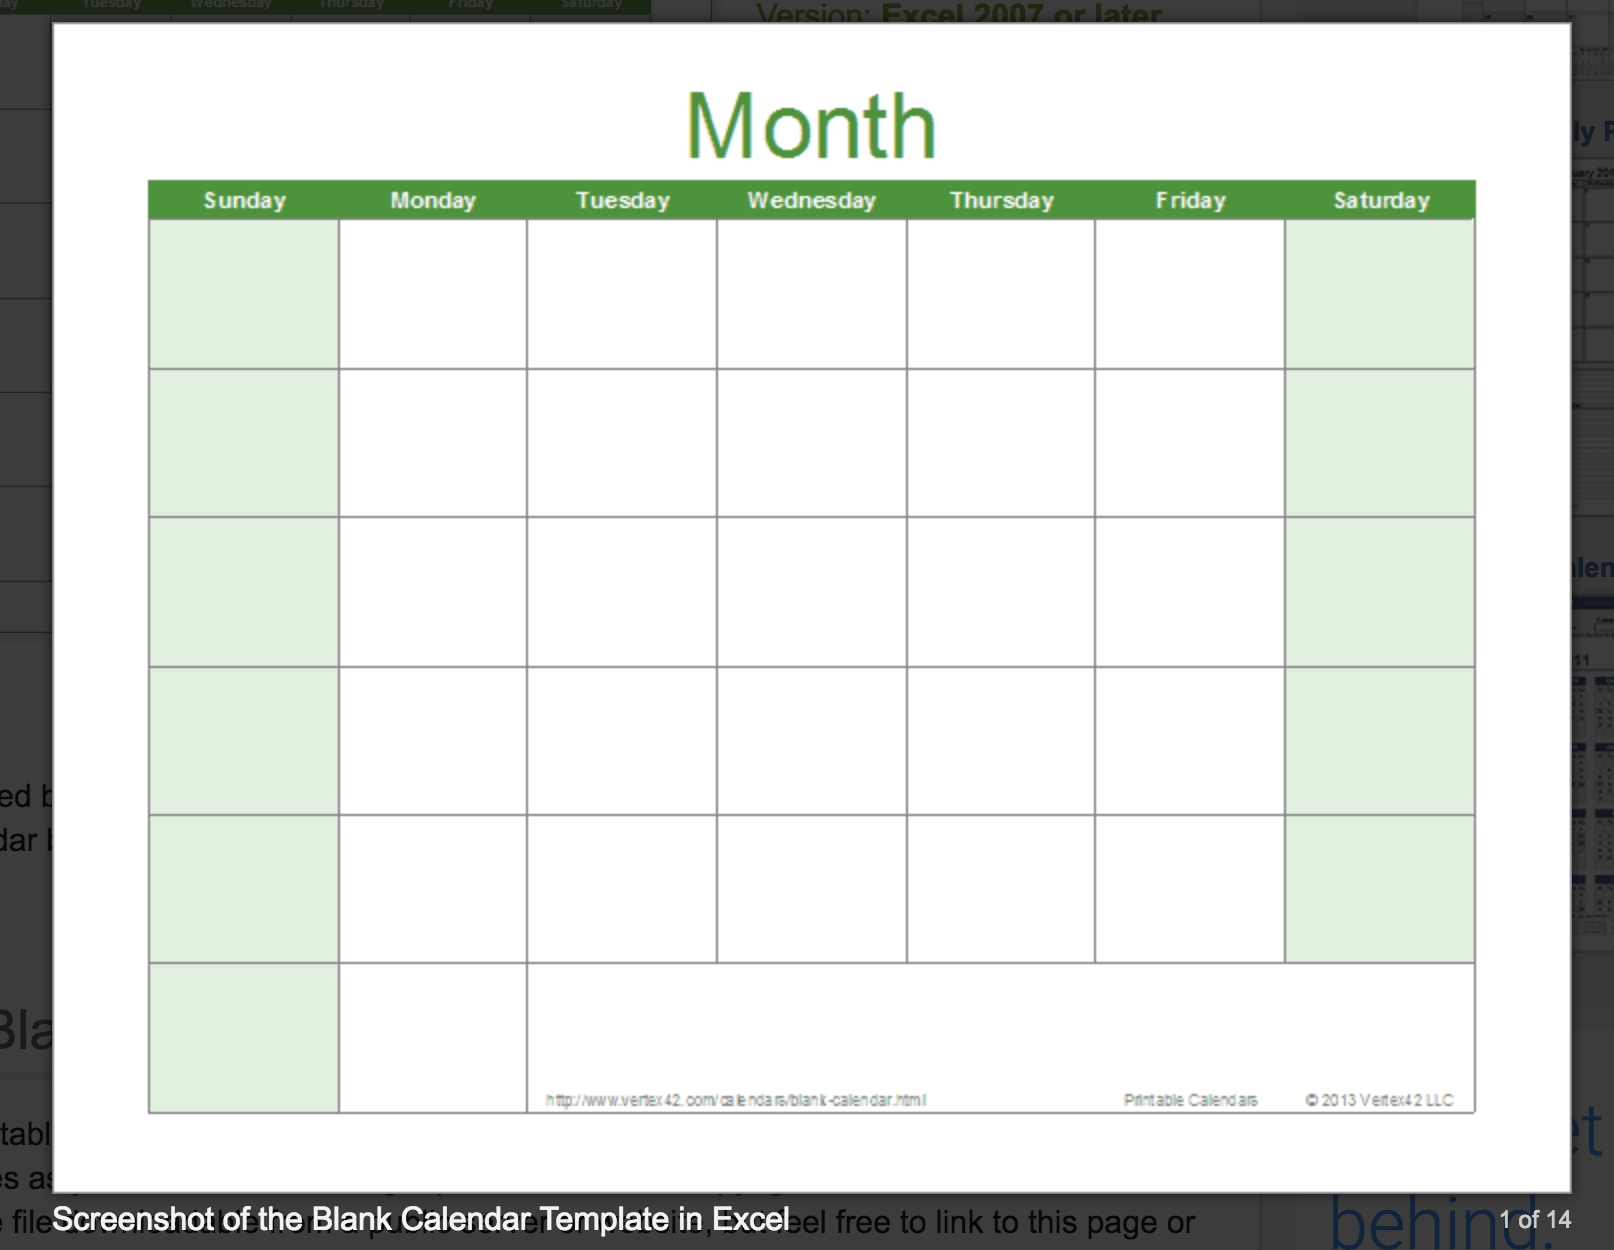 Blank Calendar: Wonderfully Printable 2019 Templates Calendar Template By Vertex42